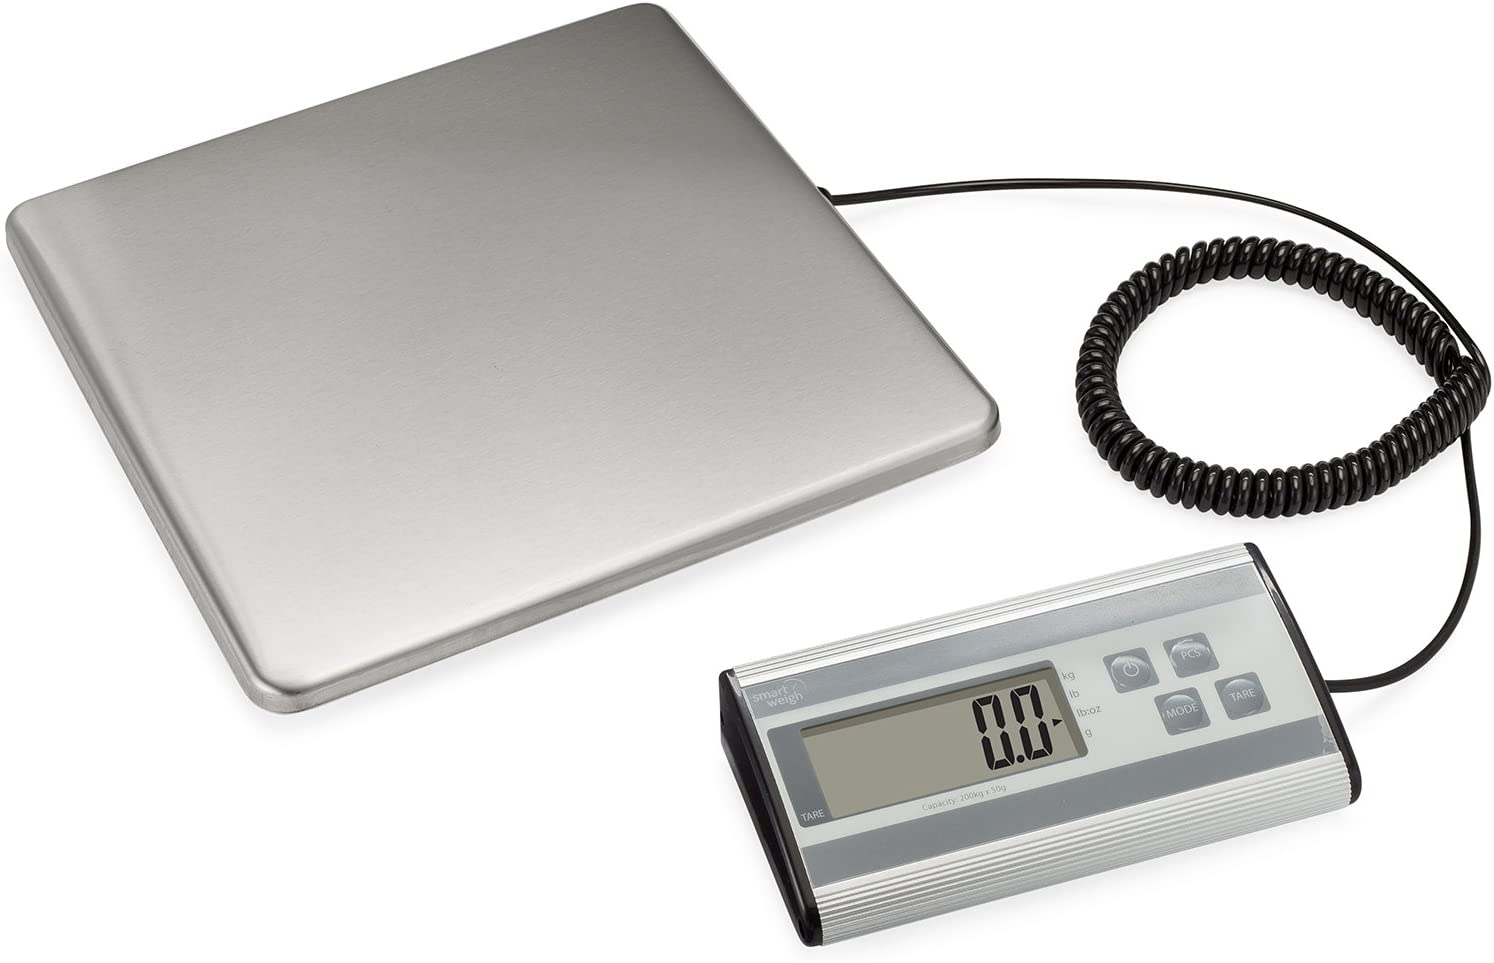 Smart Weigh Digital Heavy Duty Shipping and Postal Scale with Durable Stainless Steel Large Platform, 440 Pound Capacity x 6 oz Readability, UPS USPS Post Office Postal Scale and Luggage Scale : Office Products